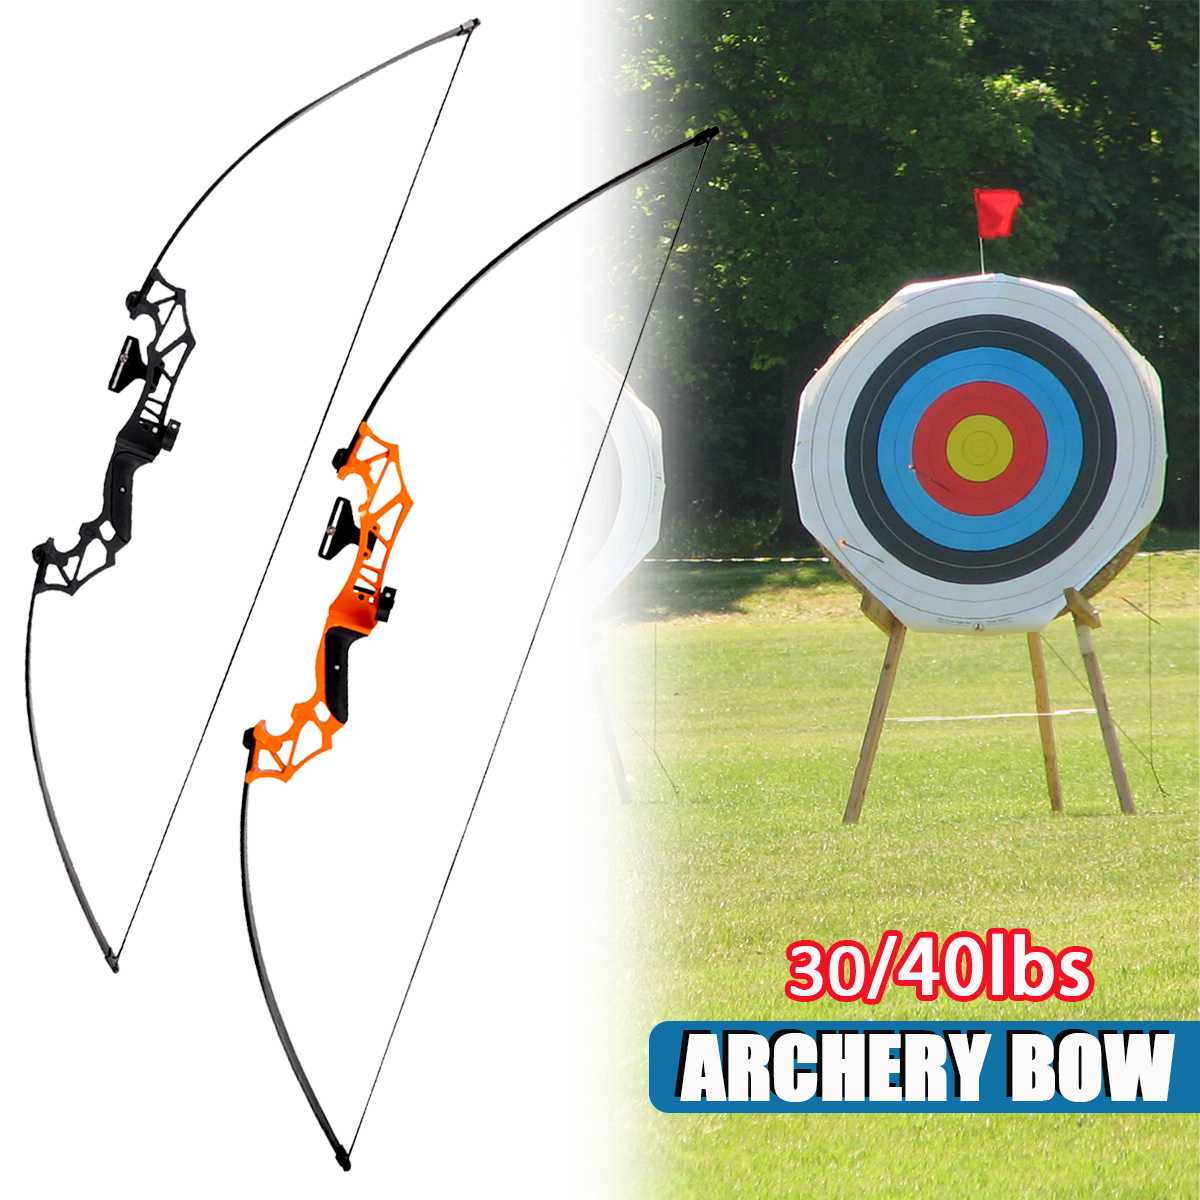 Archery Professional Recurve Bow Takedown Hunting Bow Metal Riser 30/40lbs Right Handed Outdoor Hunting Shooting Fishing